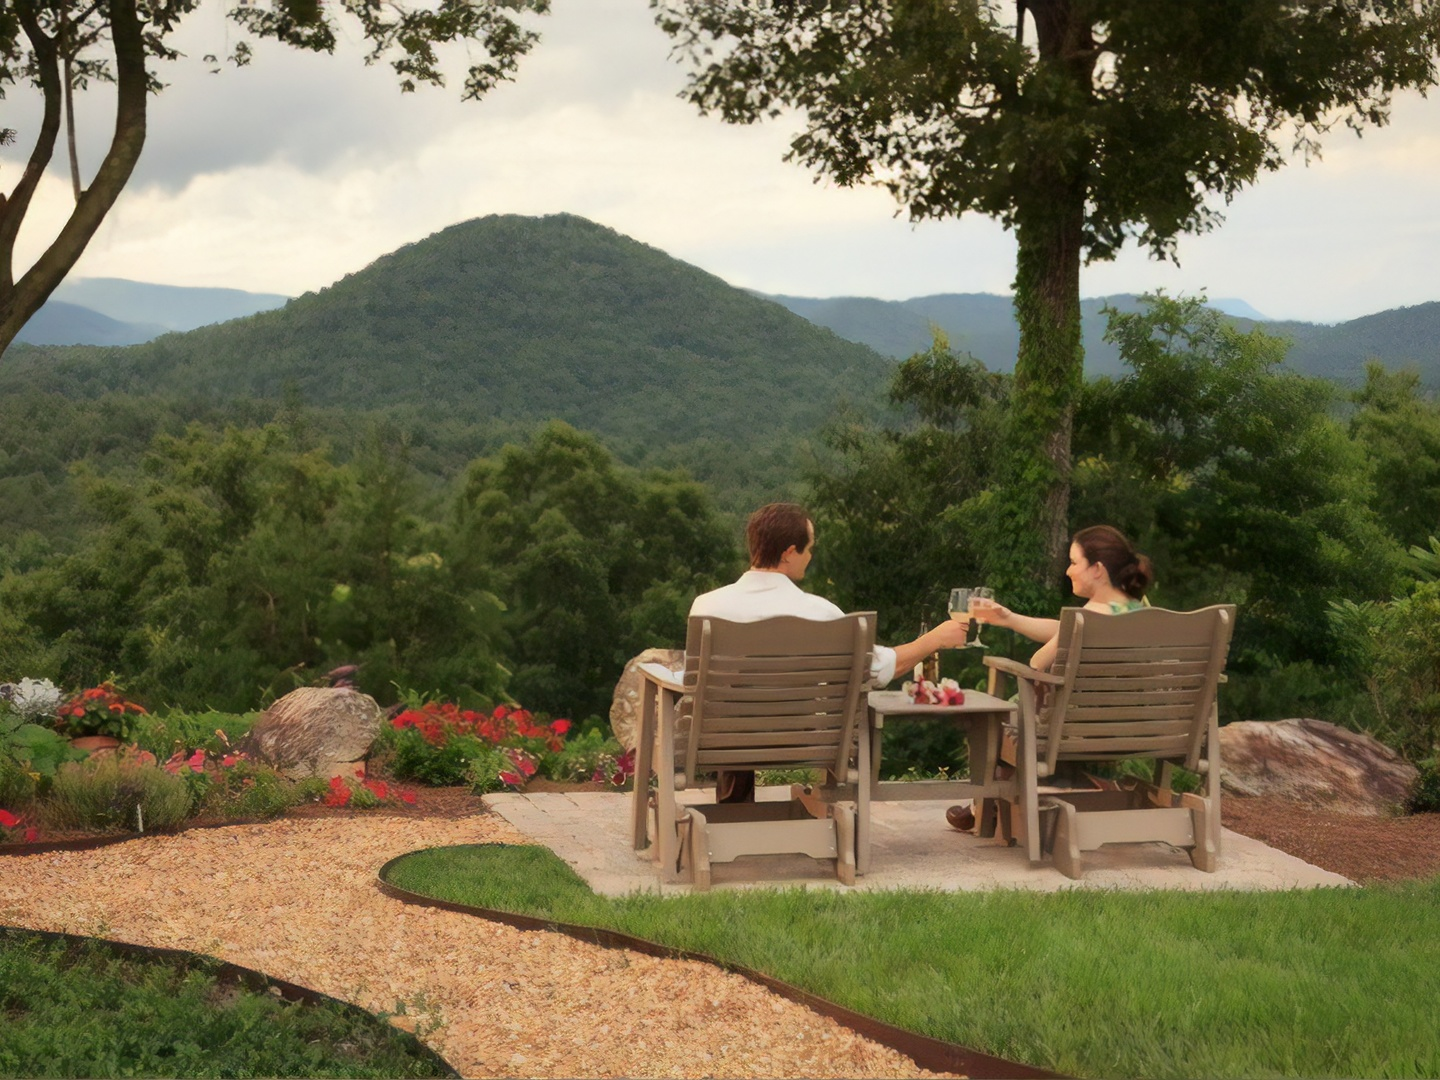 A person sitting on a bench in a park at Lucille's Mountain Top Inn & Spa.